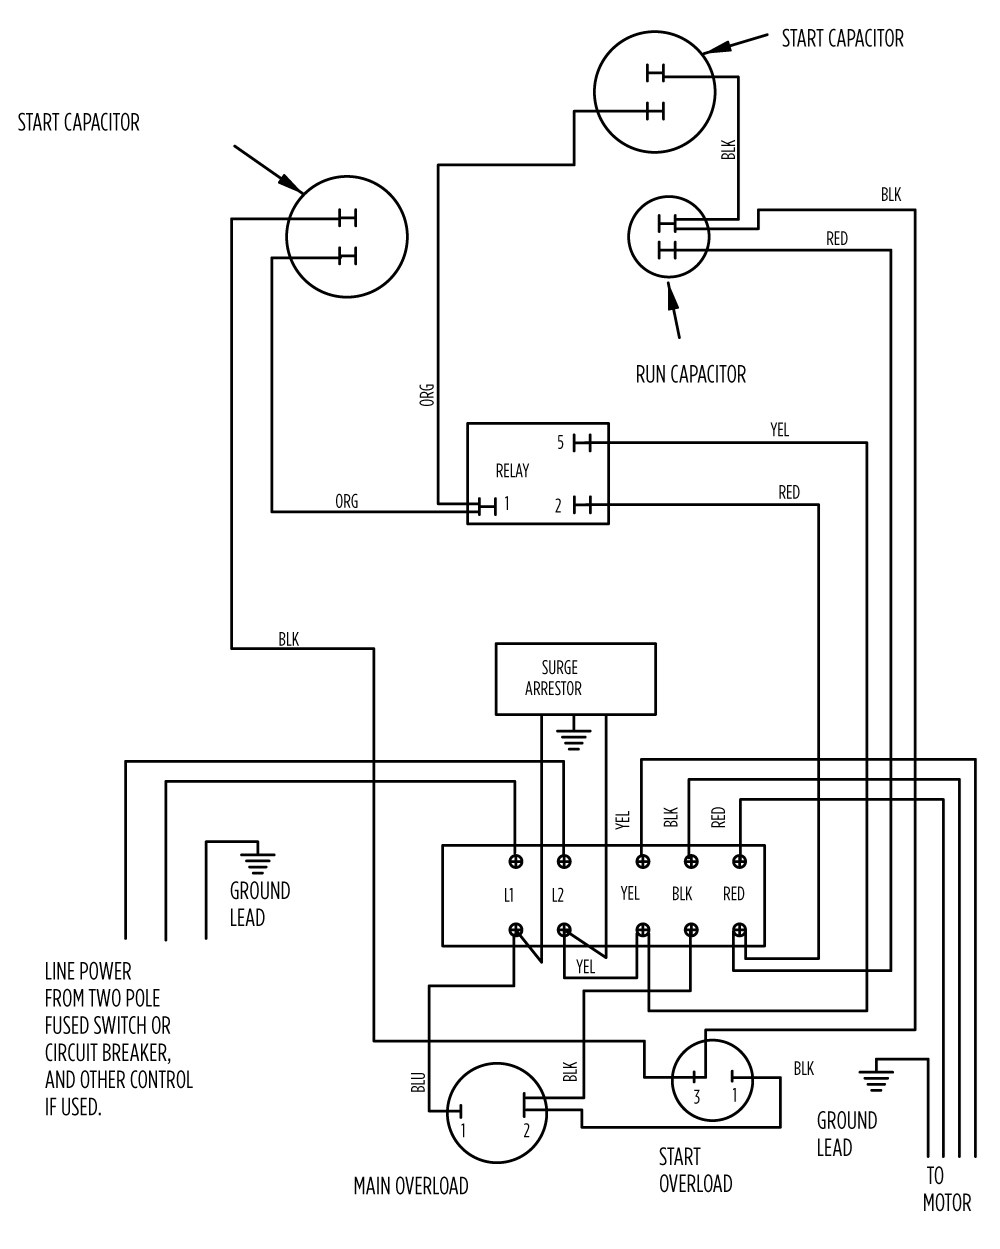 AIM Manual Page 56 SinglePhase Motors and Controls Motor